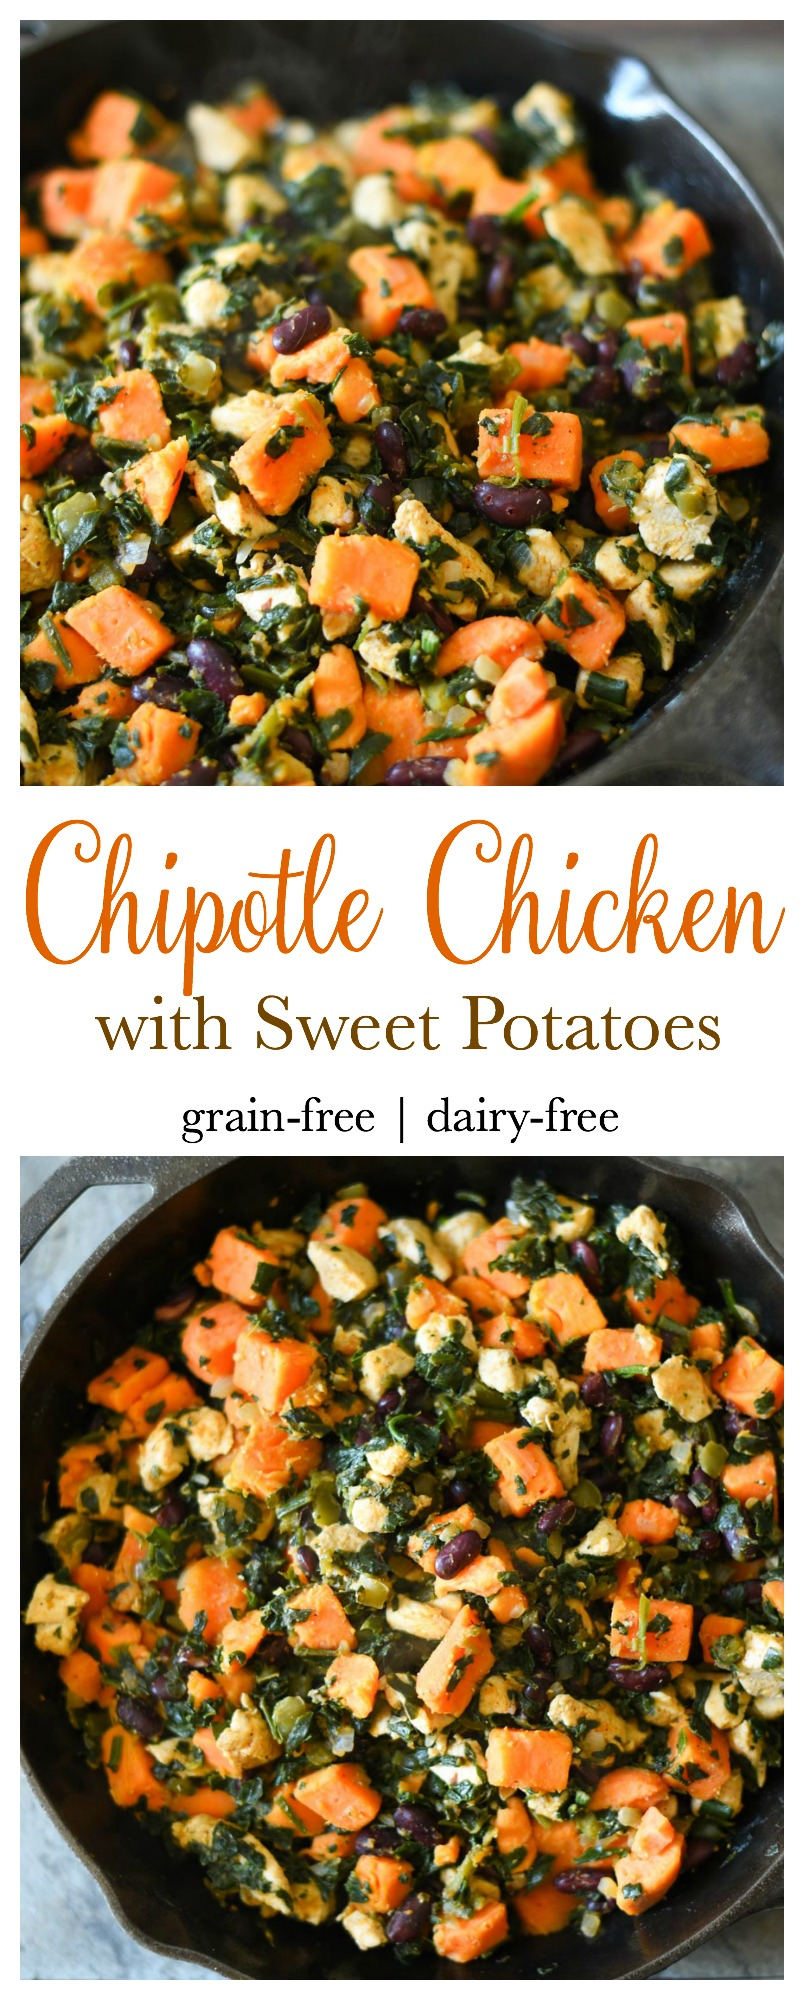 Chipotle Chicken with Sweet Potatoes